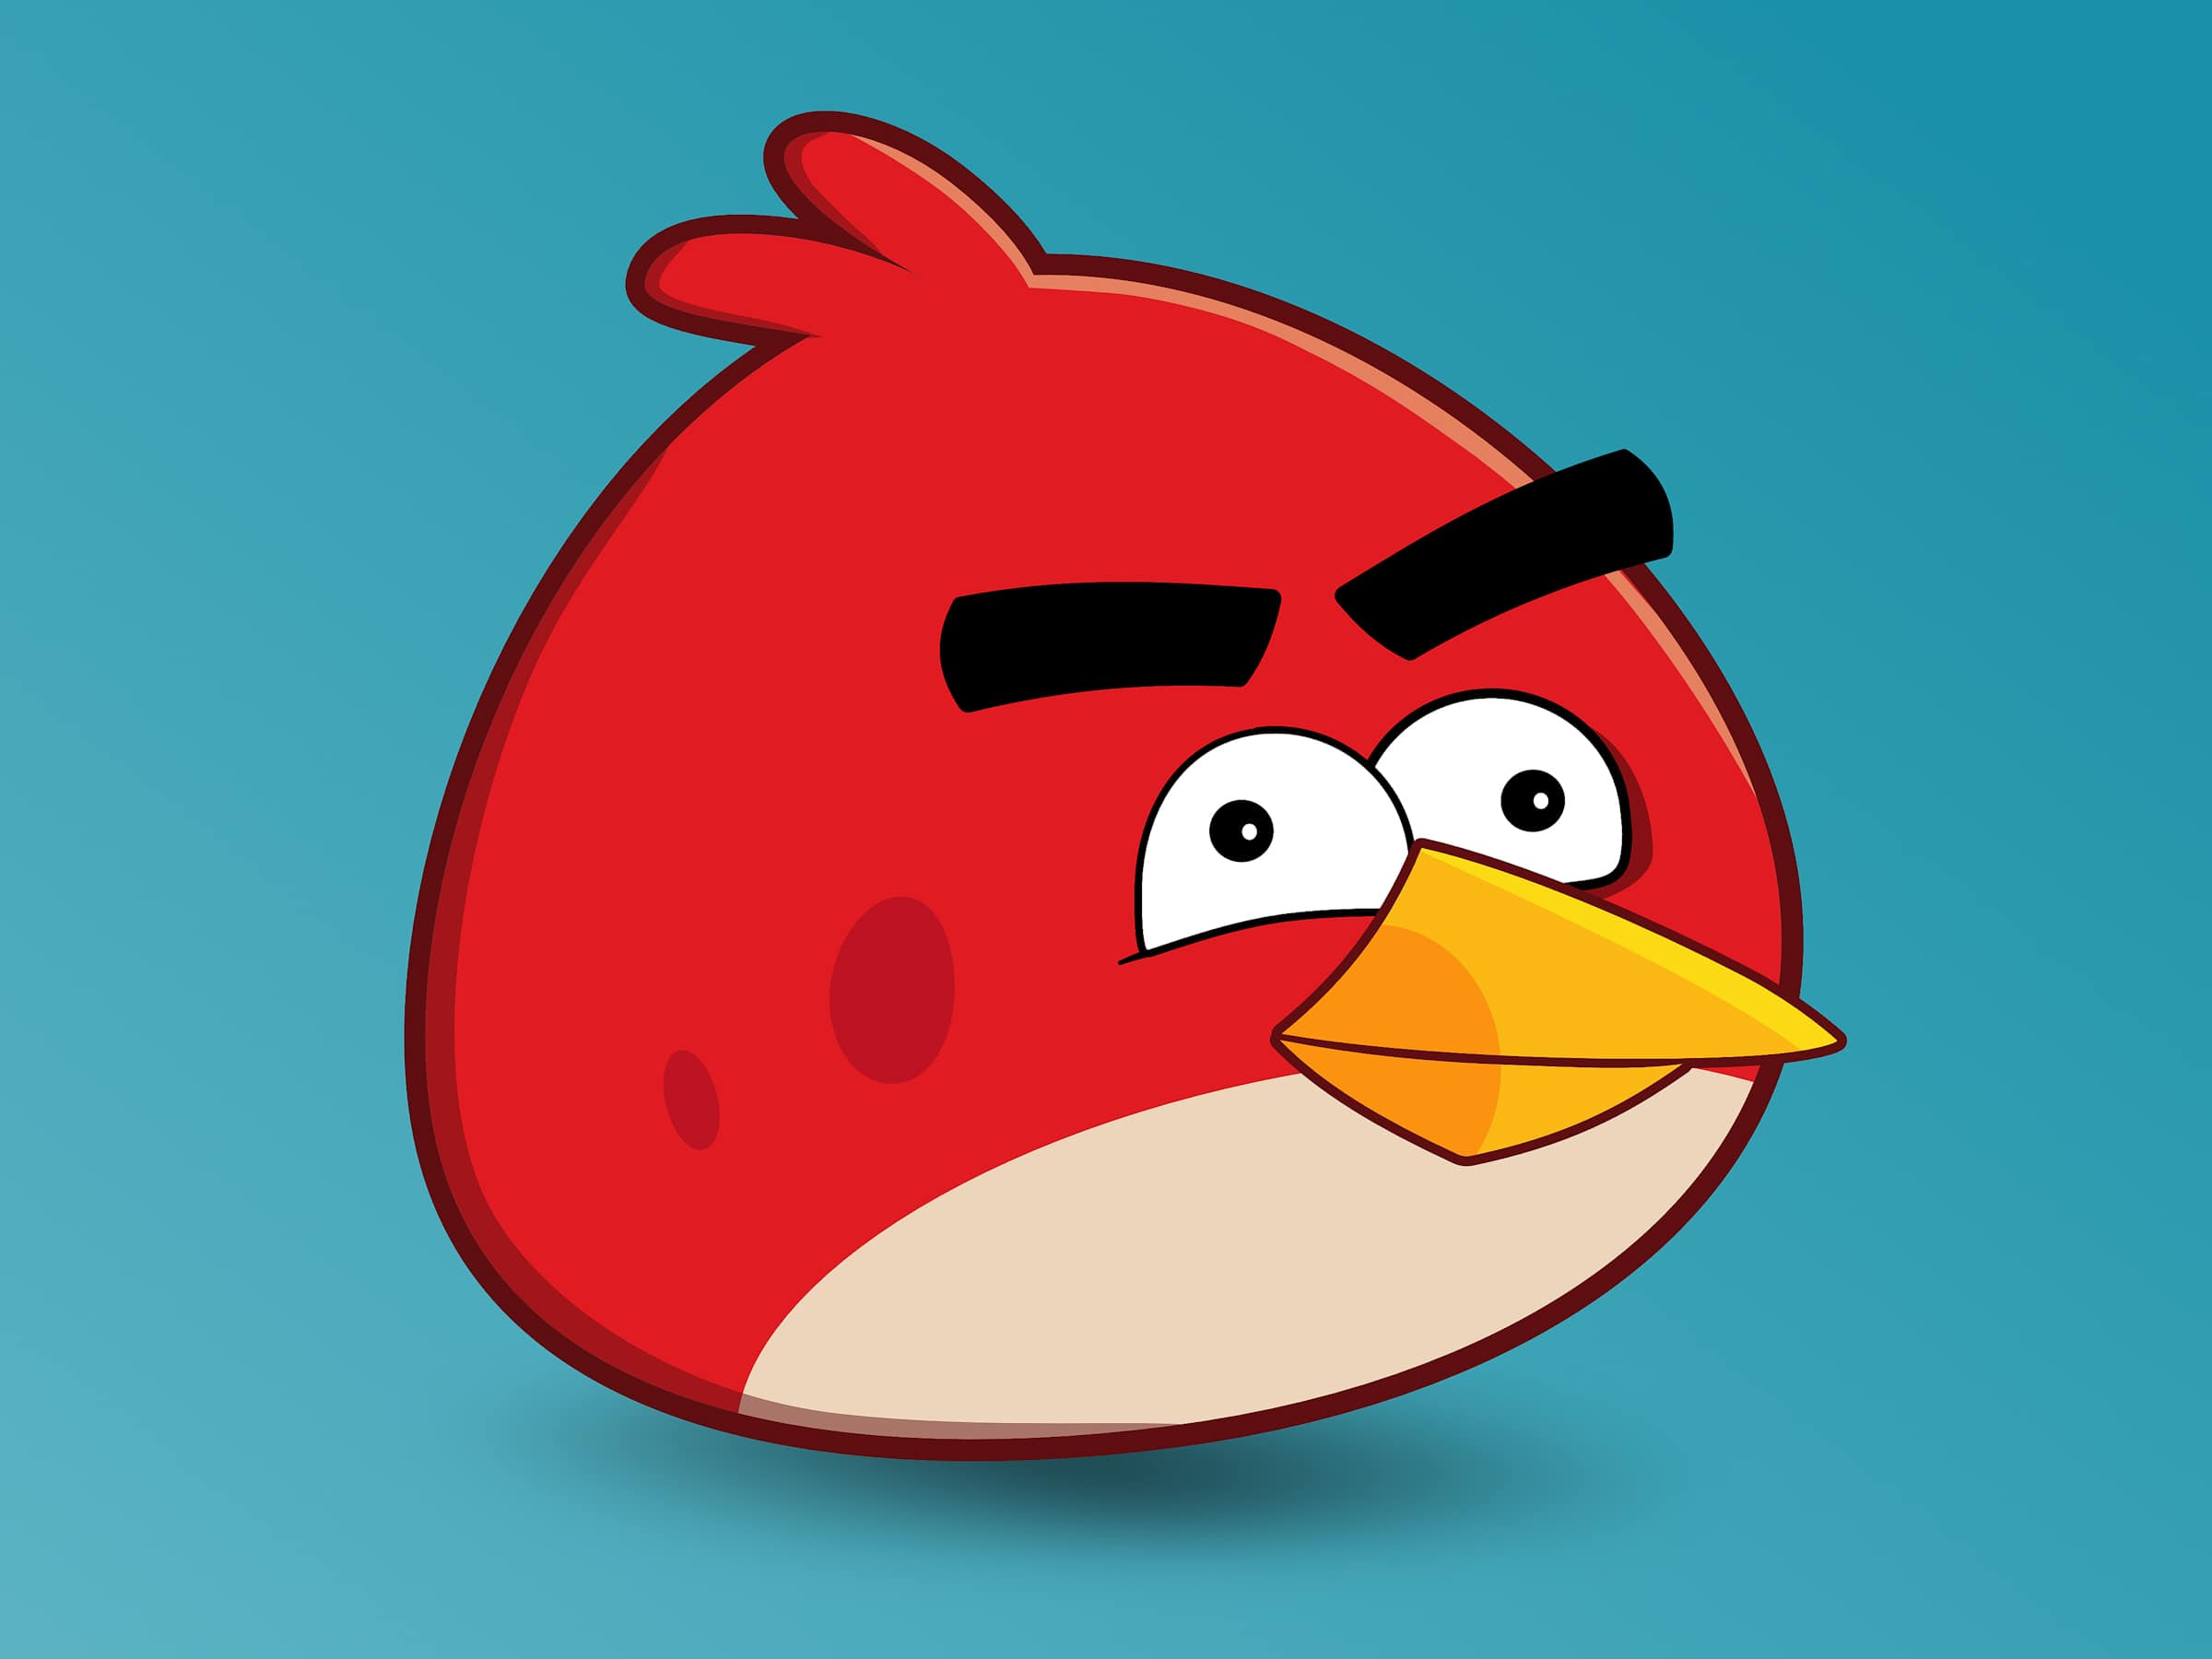 Der rote Angry Bird